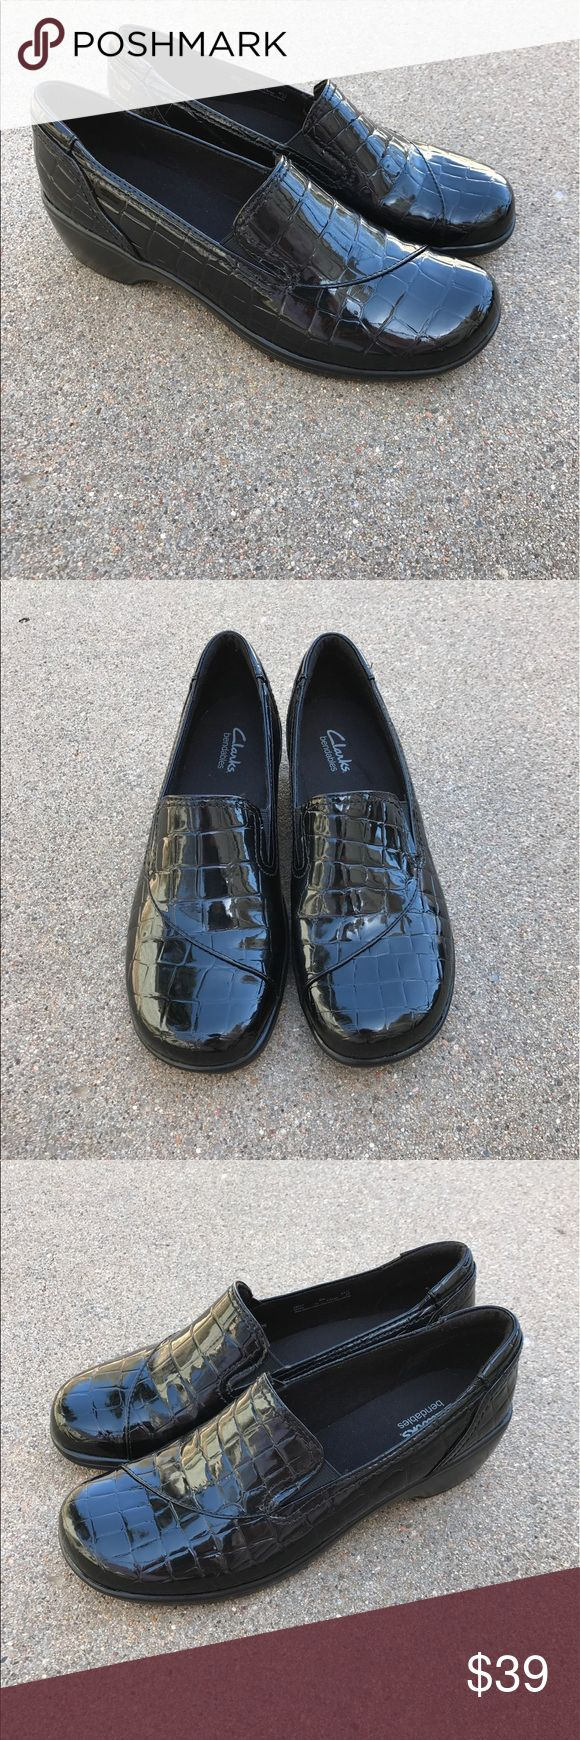 Clarks Bendables Women's Comfort Shoes Mules Clogs Lovely Clarks Bendables women's comfort shoes mules clogs low heels slip on loafer black croc pattern man made materials Size 8M pre- owned, in good condition. Clarks Shoes Mules & Clogs